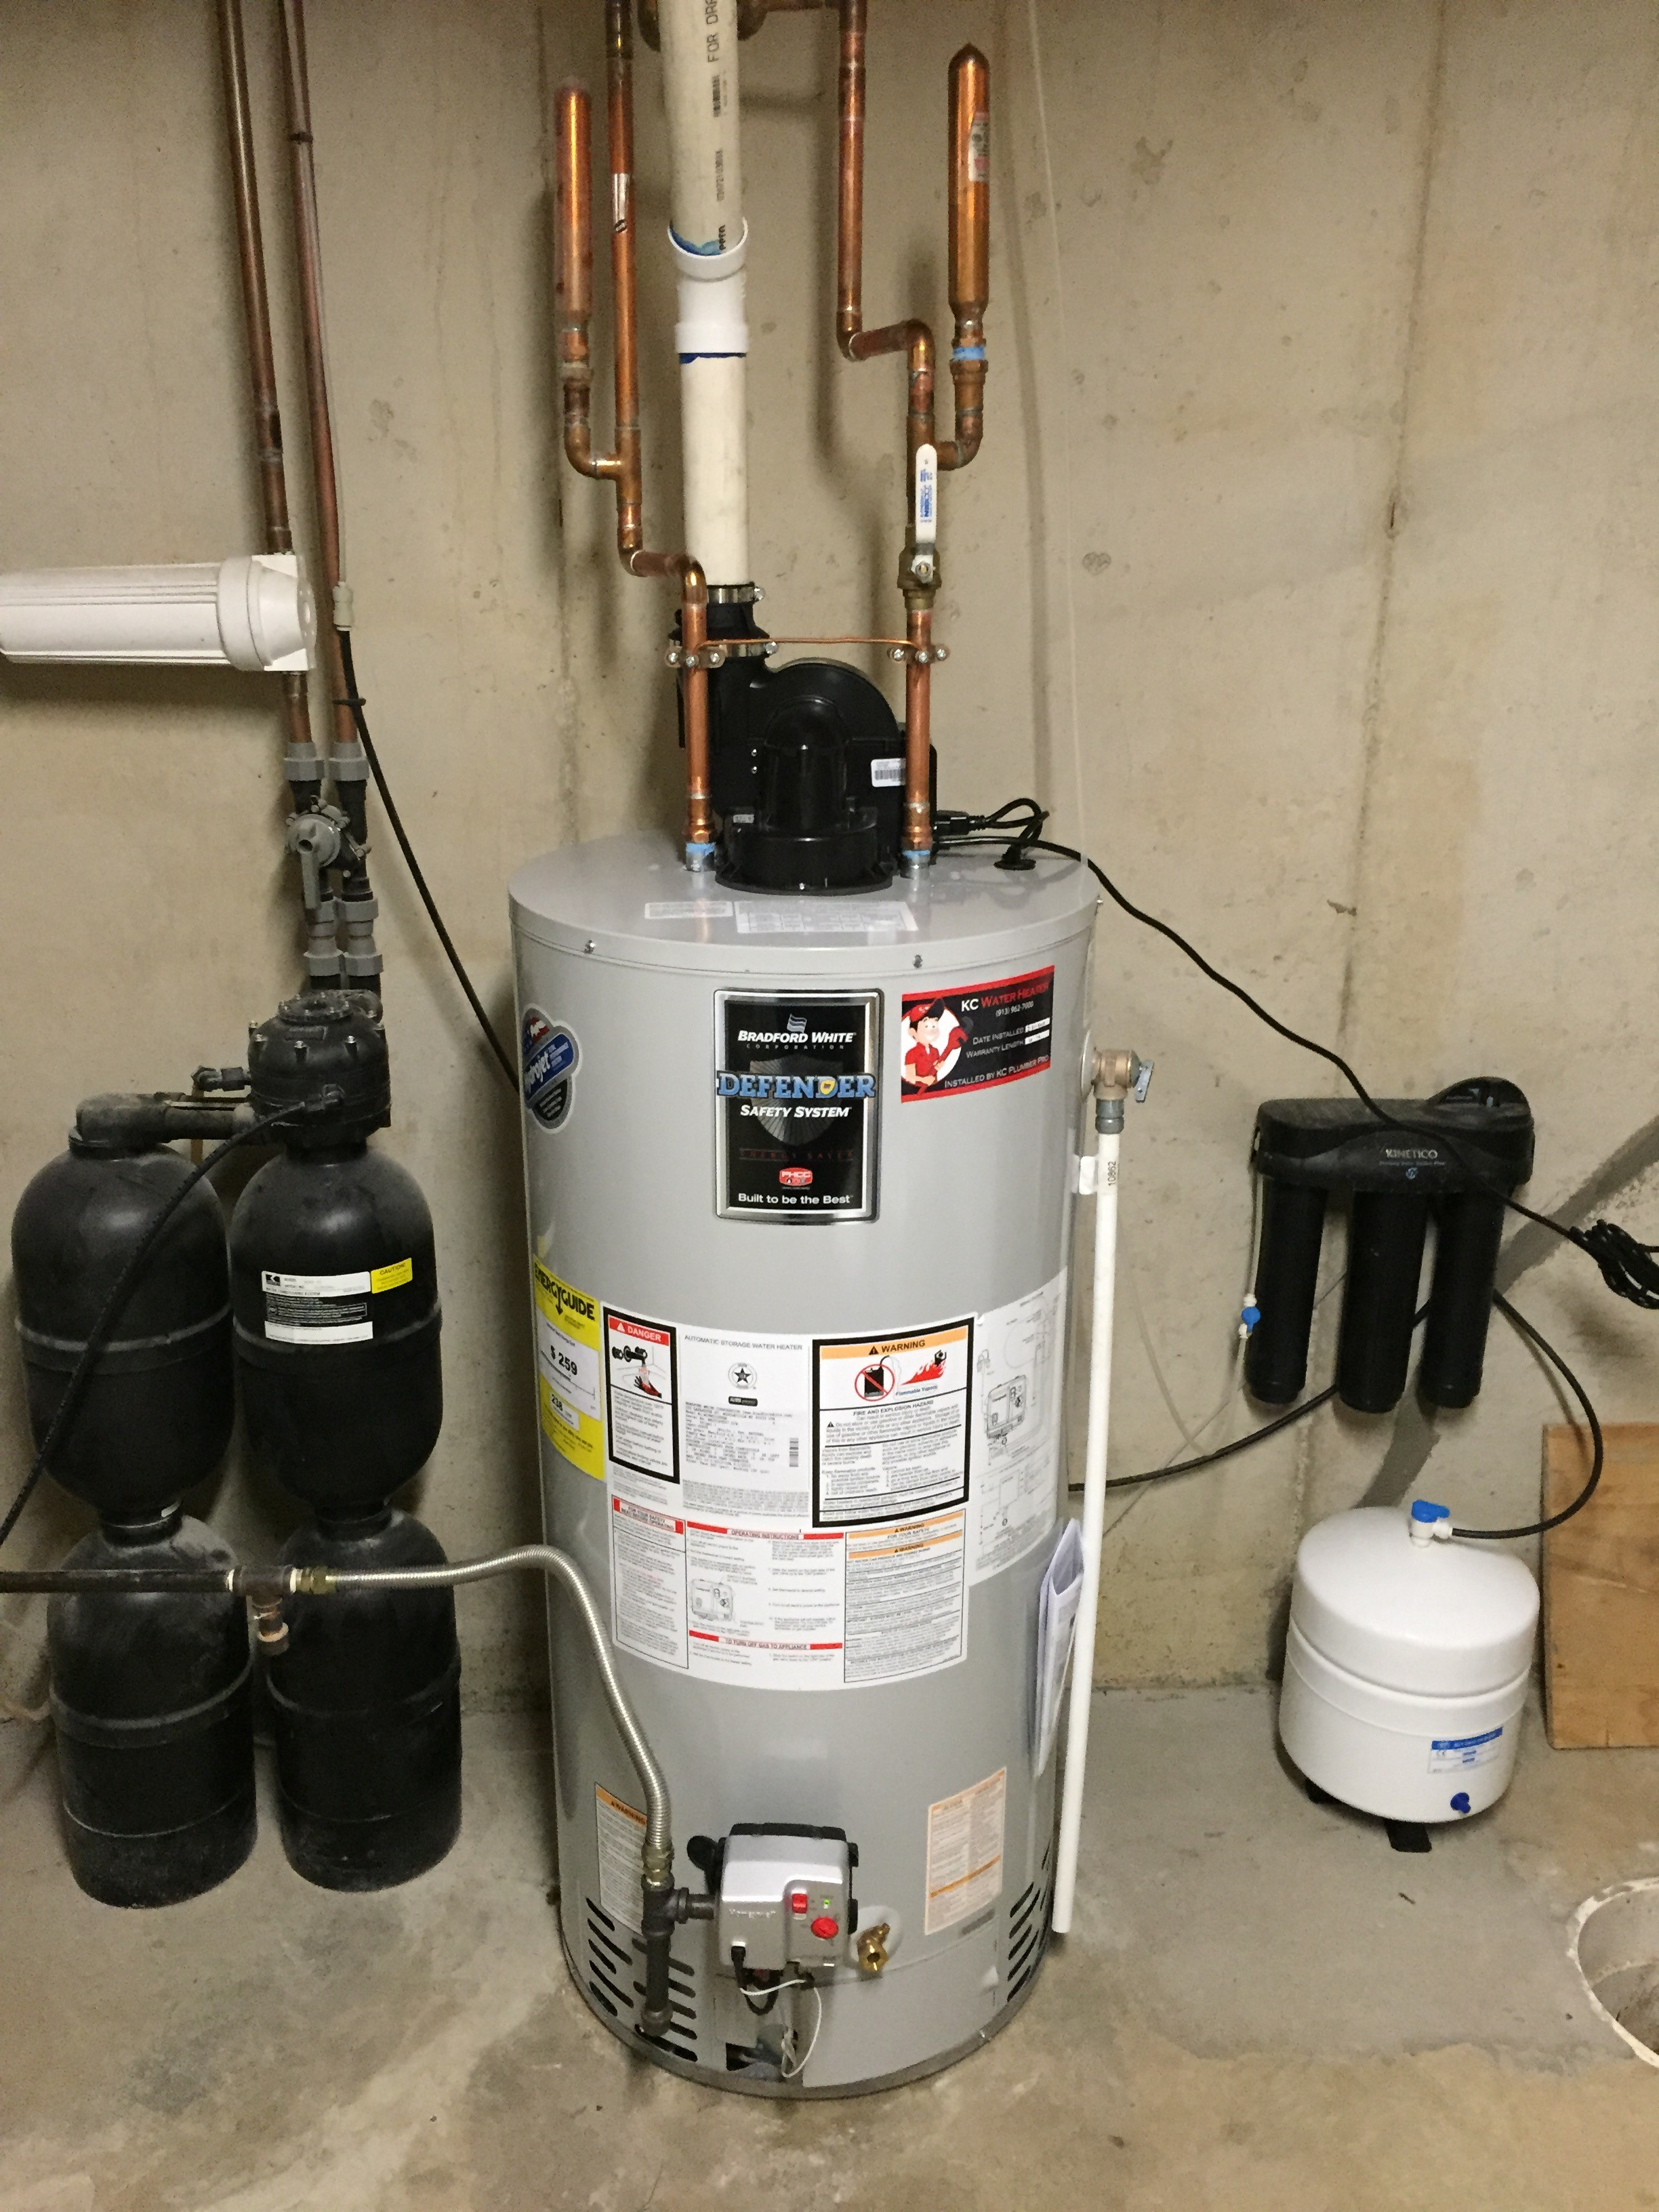 rheem water heater 40 gallon. power vent water heater lenexa, rheem 40 gallon